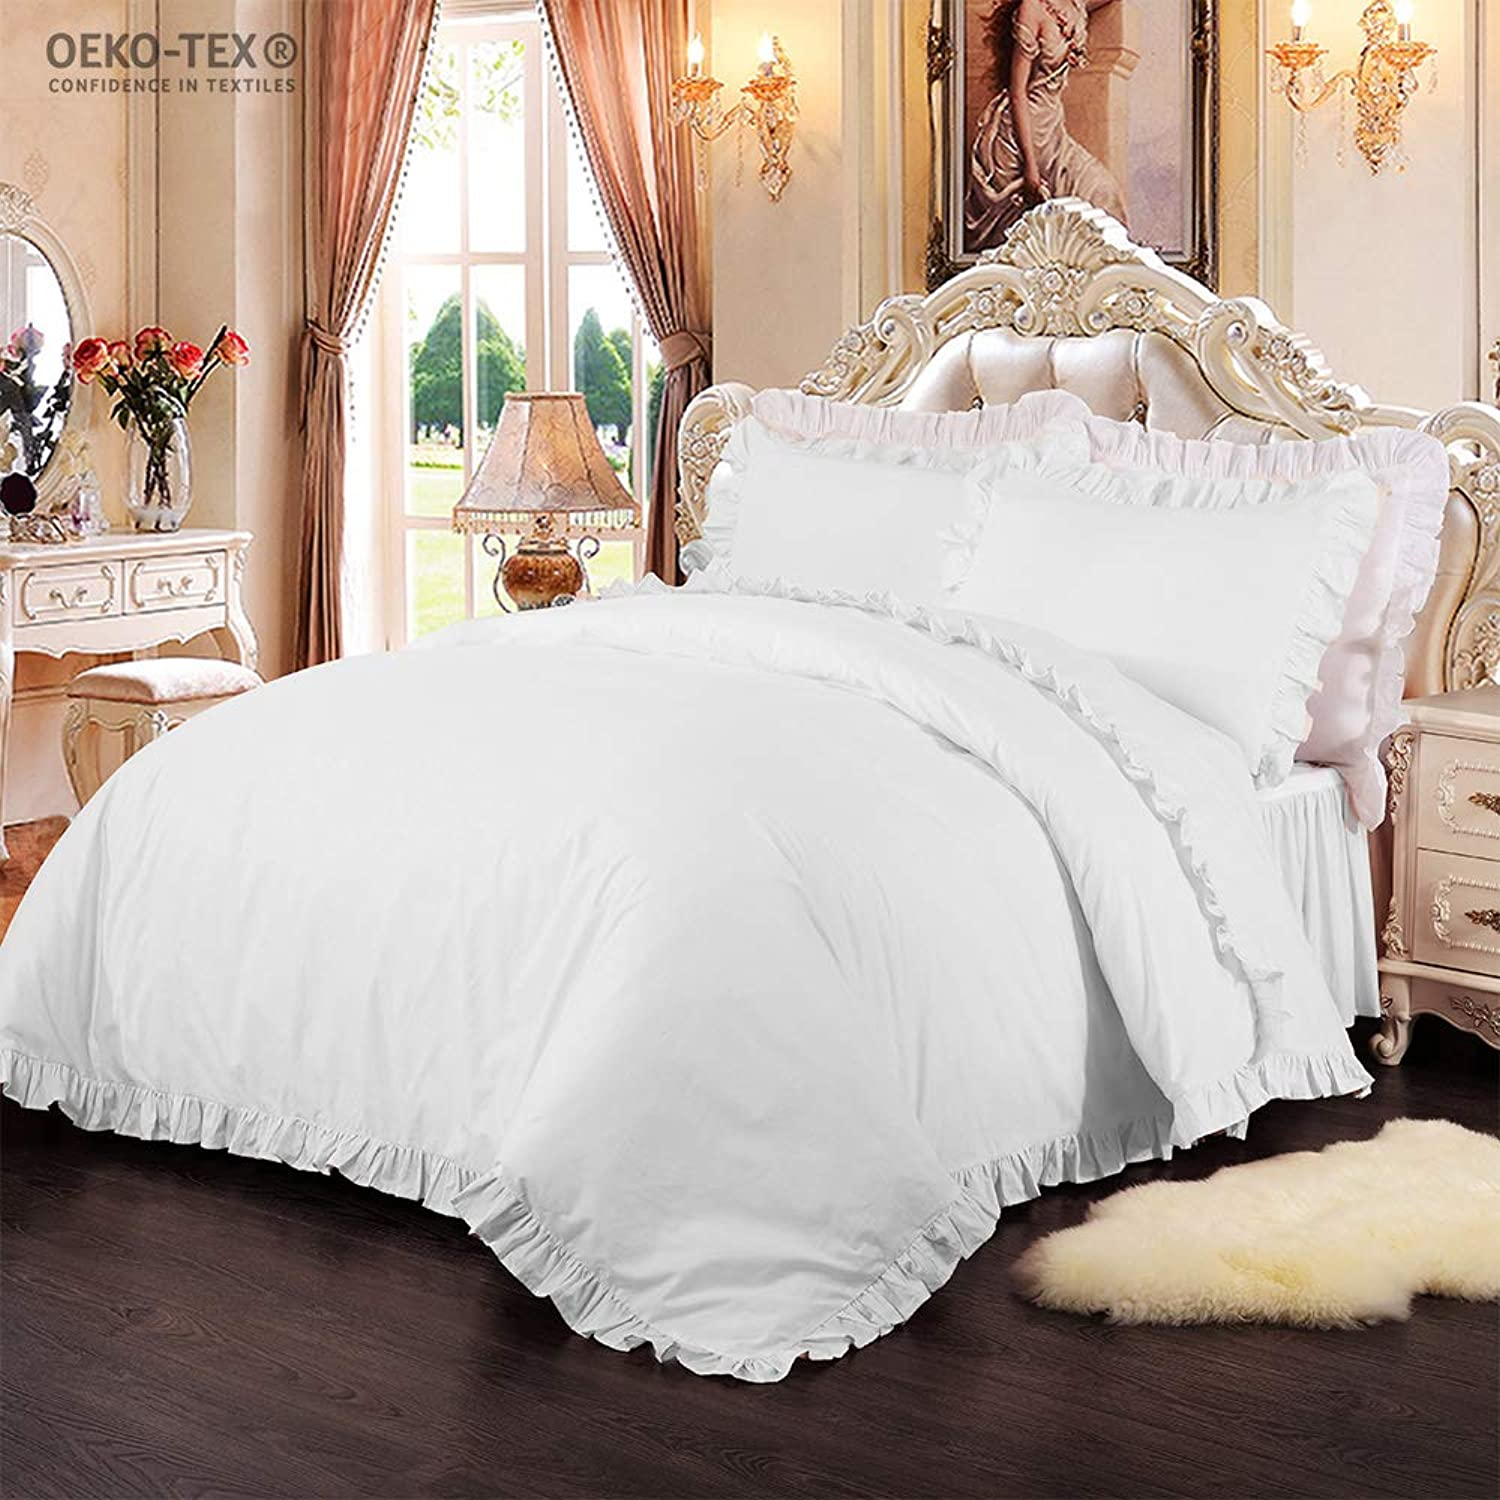 Simple&Opulence 100% Cotton Percale 250TC Plain Flouncing Girl Bedding Set Queen Twin Quilt King Duvet Cover Set Including 1 Duvet Cover and 2 Pillowcases (White, King)